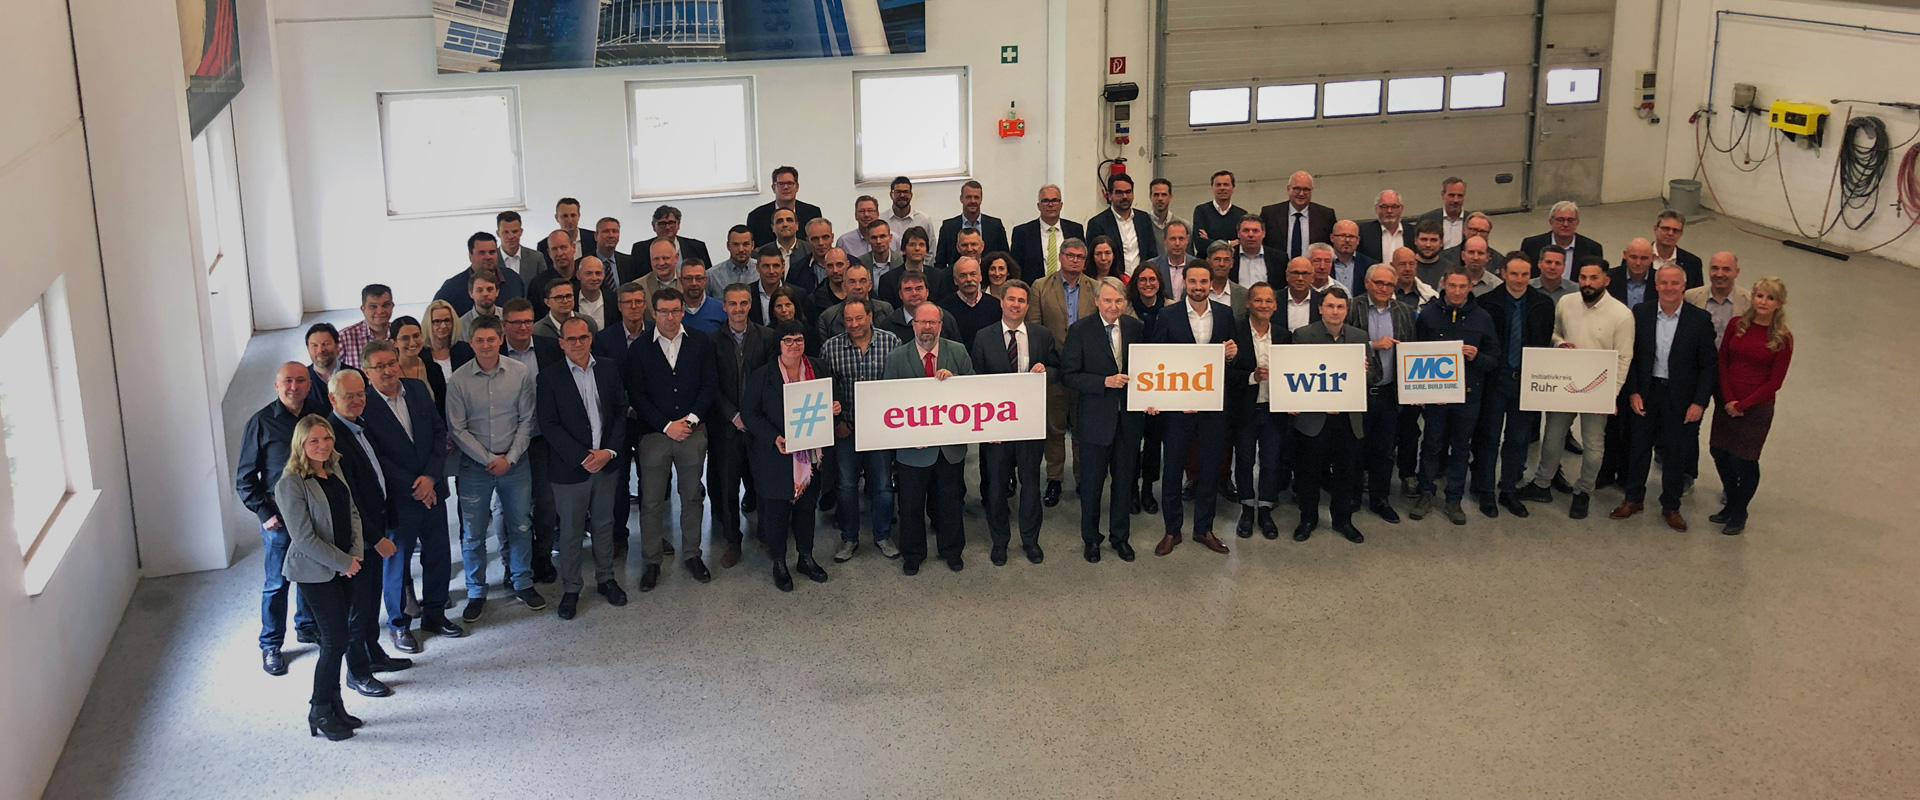 #europasindwir – MC-Bauchemie executives fly the flag for Europe